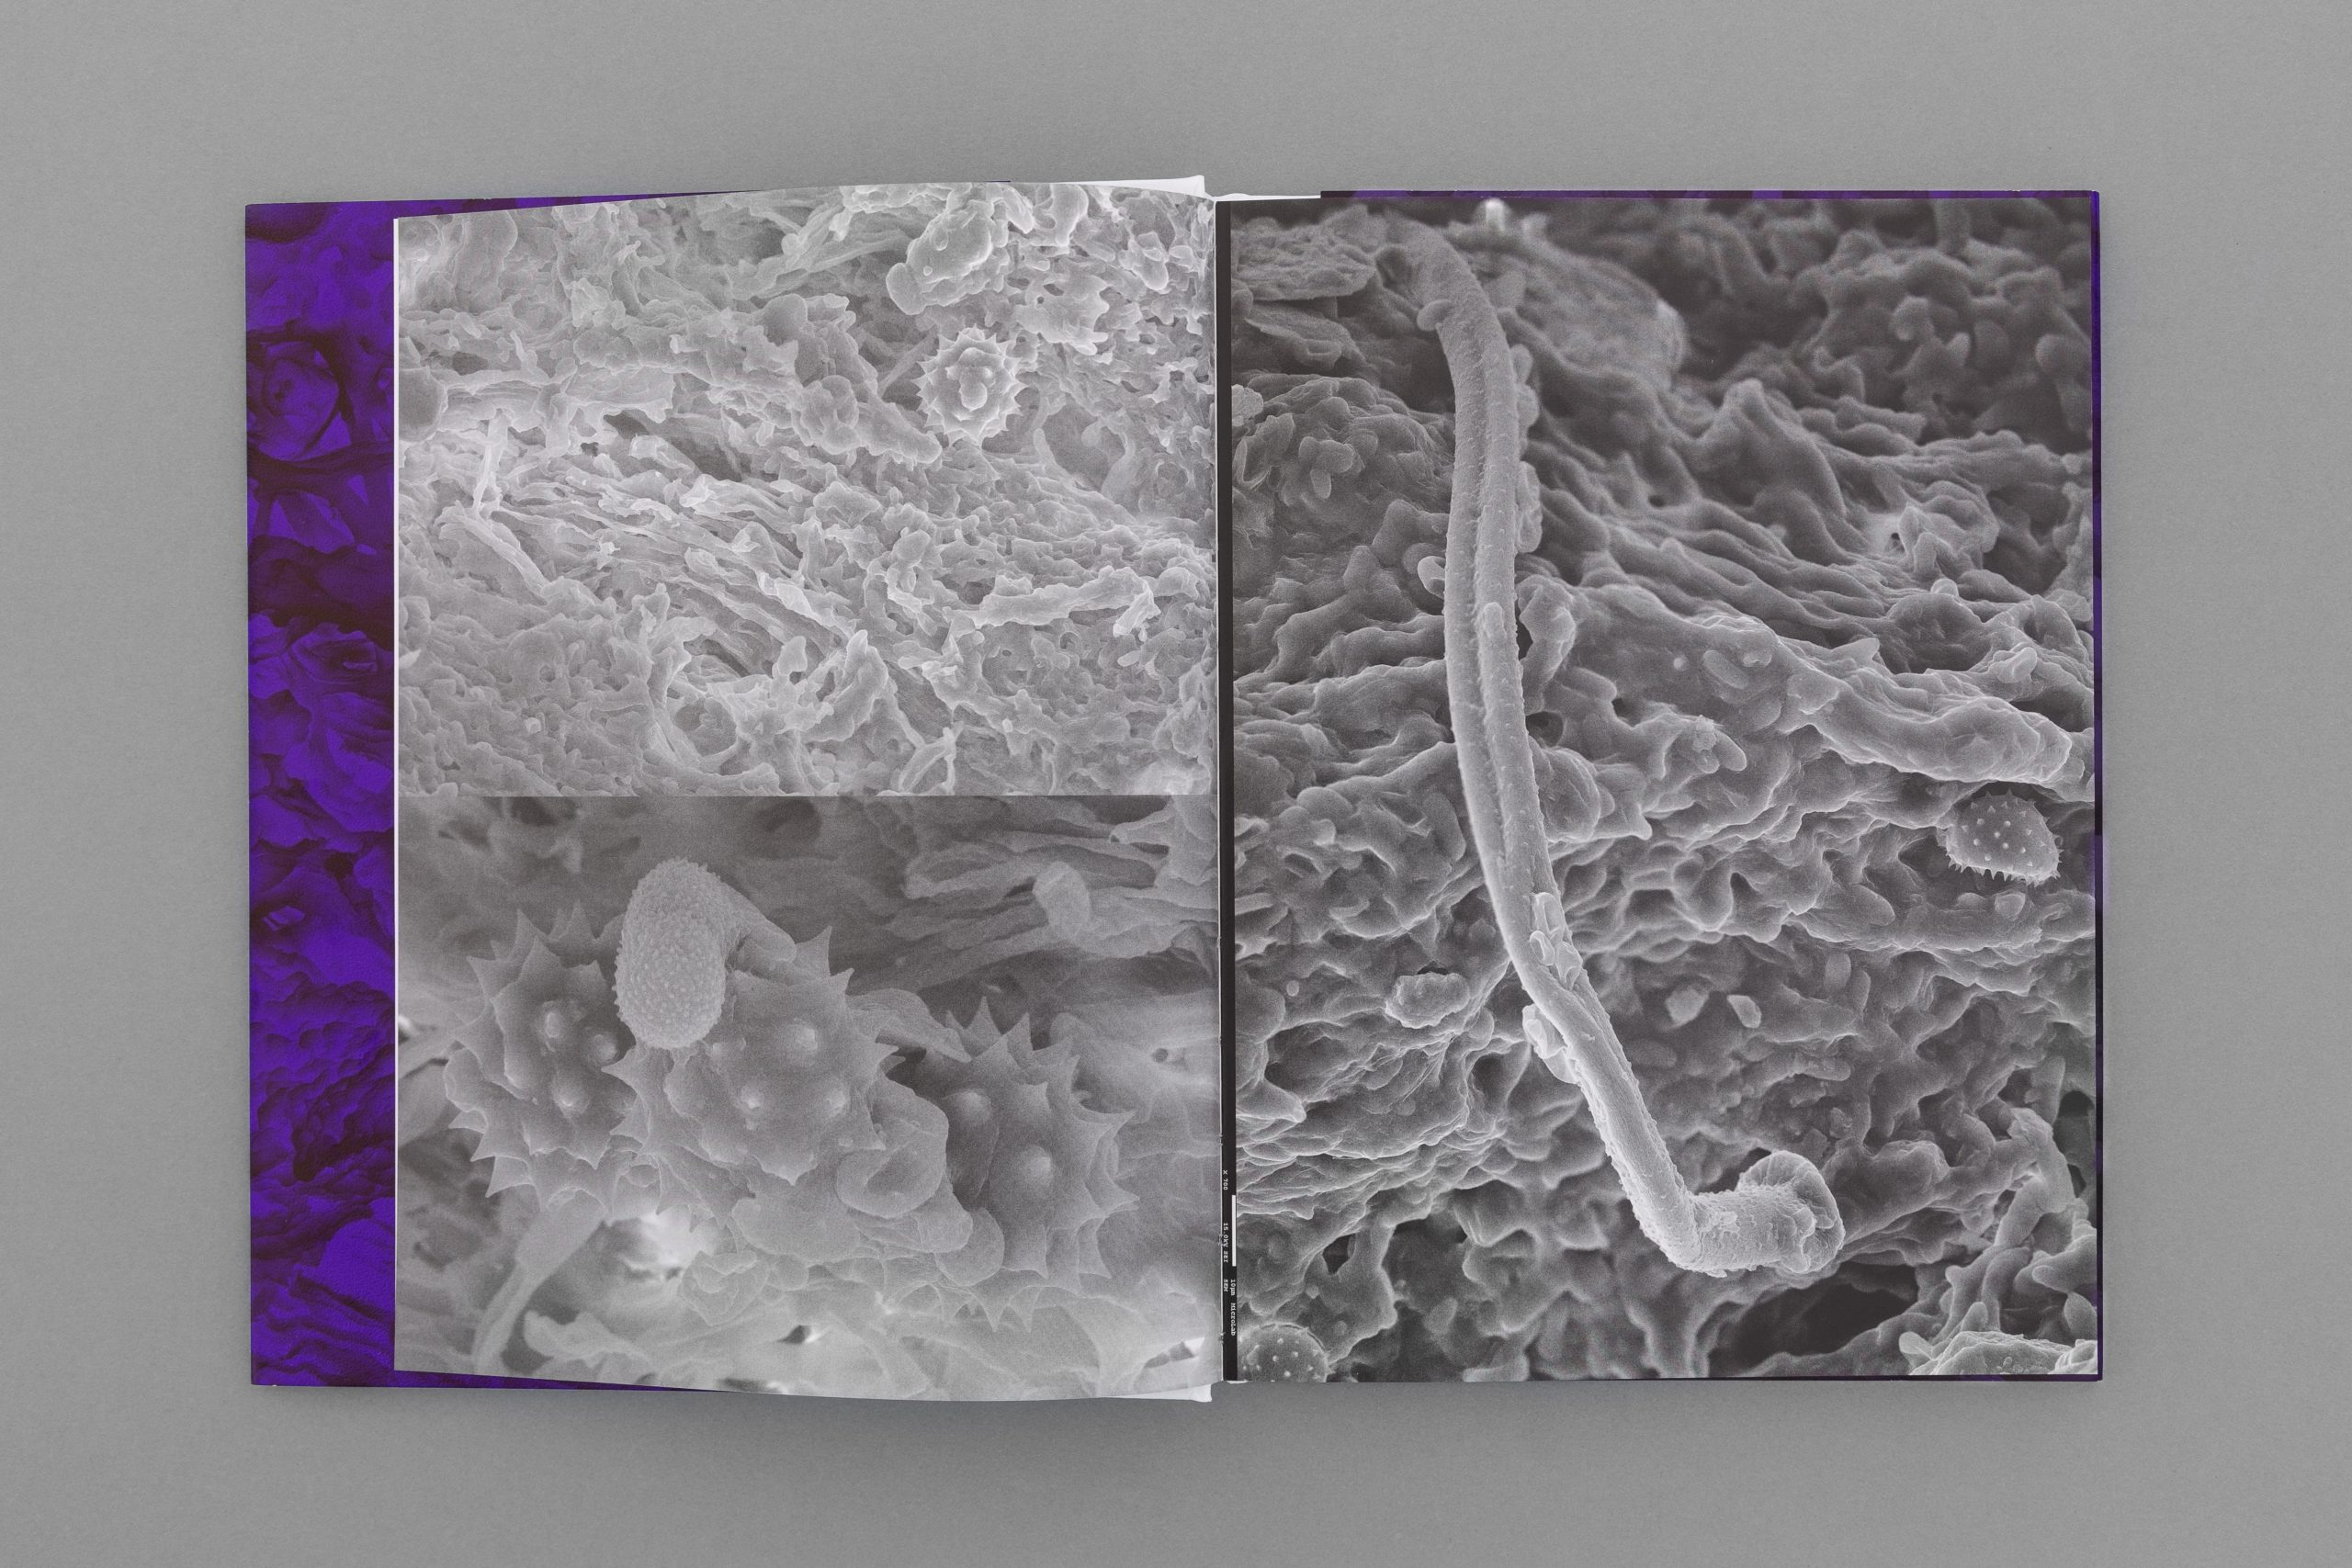 João M. Machado – Diana Policarpo – Nets of Hyphae (3 of 15)